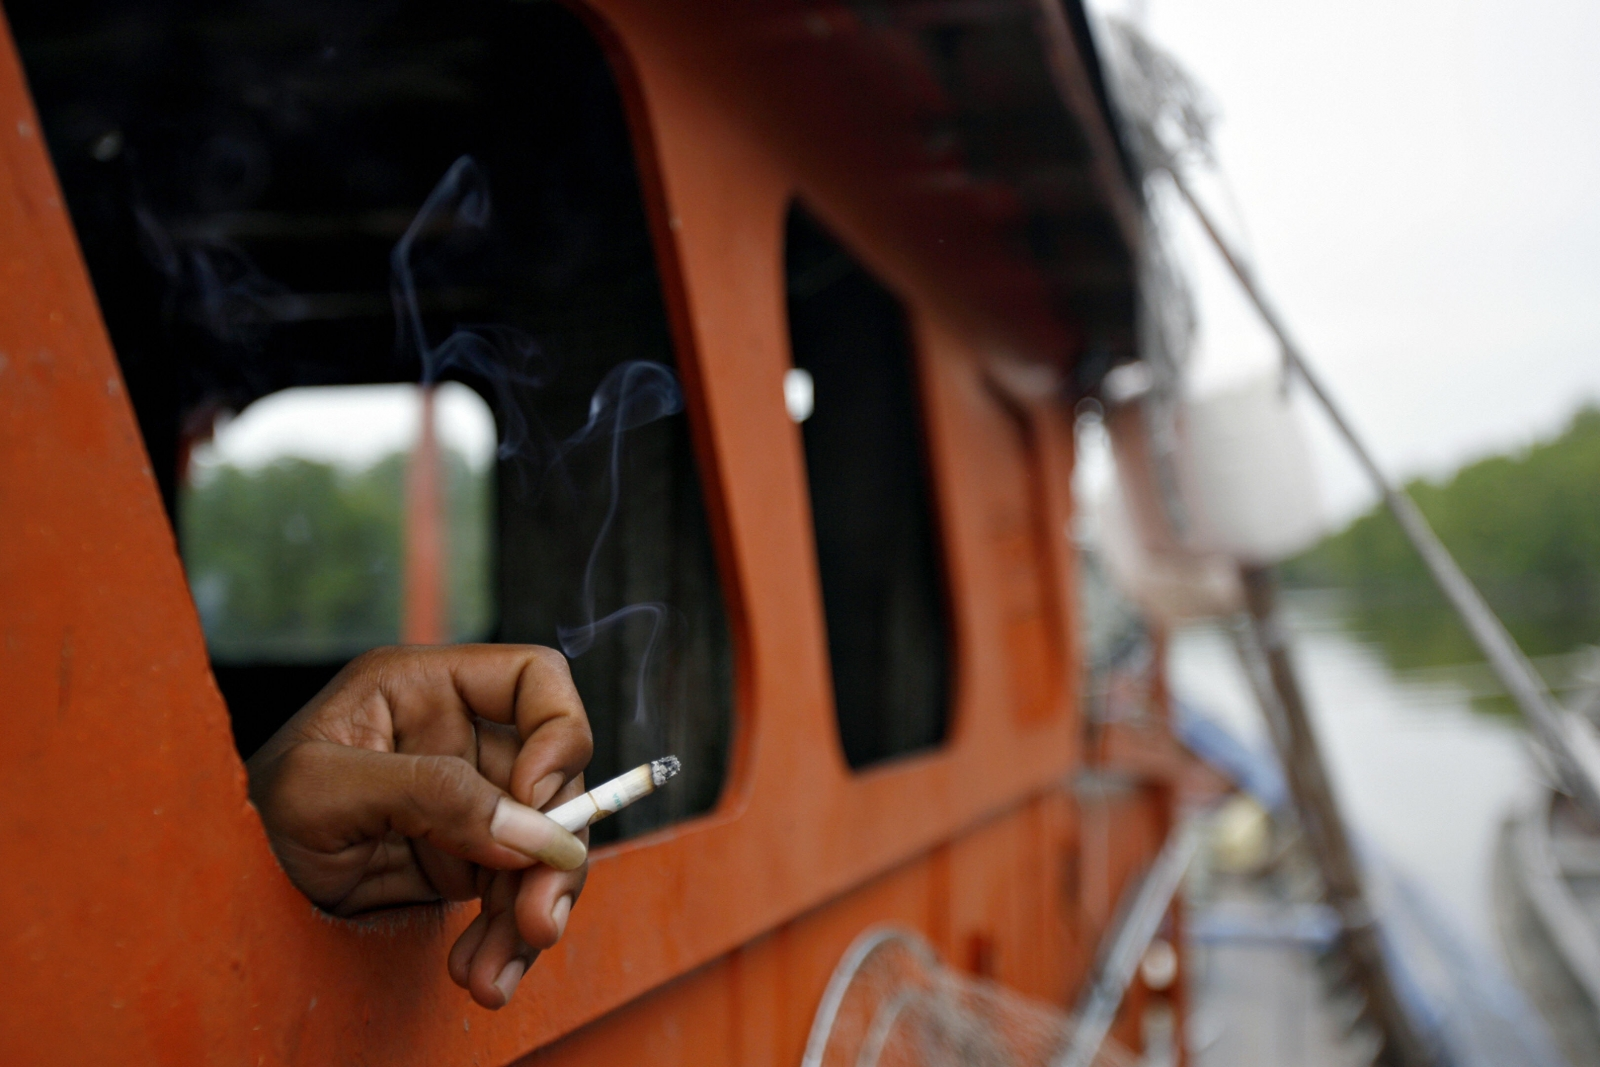 World Health Organization  flags impact of tobacco use on economy, communities